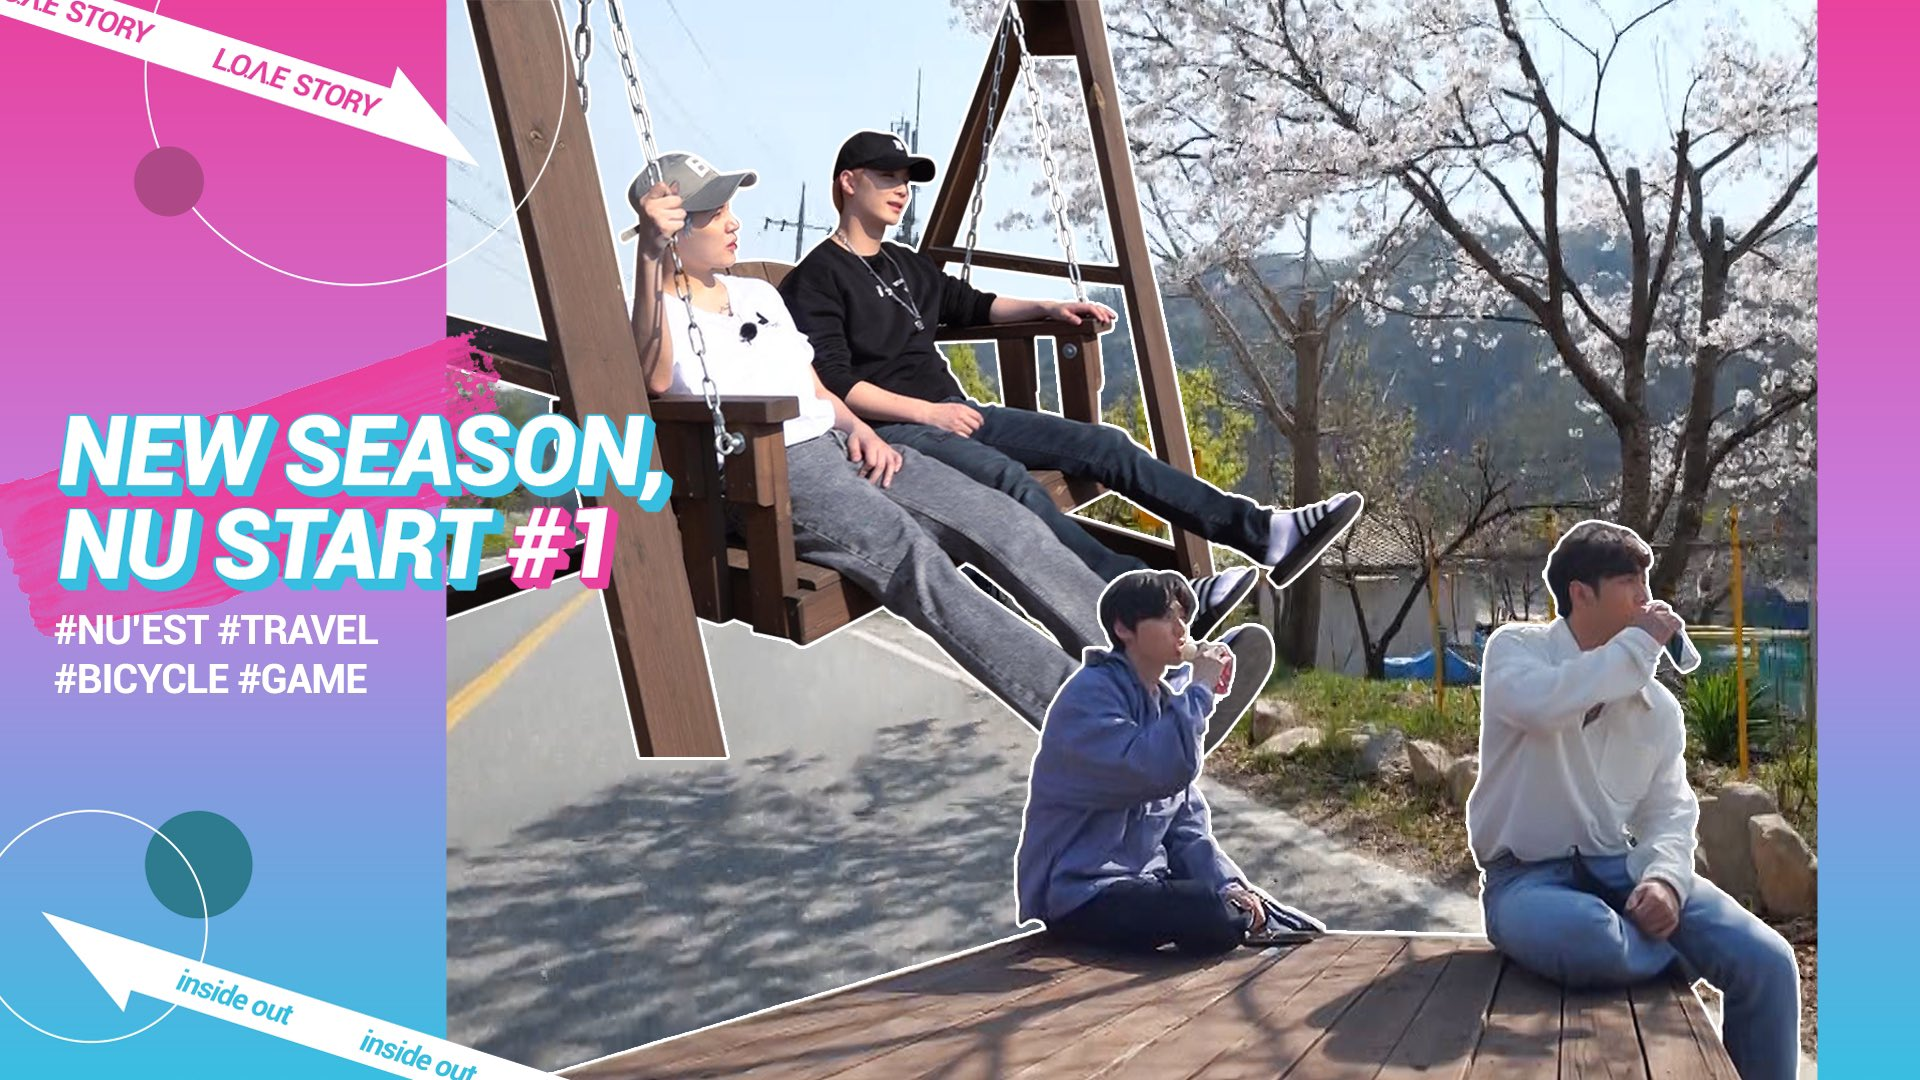 """NU'EST Experiences A Pleasant Healing Trip In First Episode Of """"L.O.Λ.E STORY: INSIDE OUT"""""""